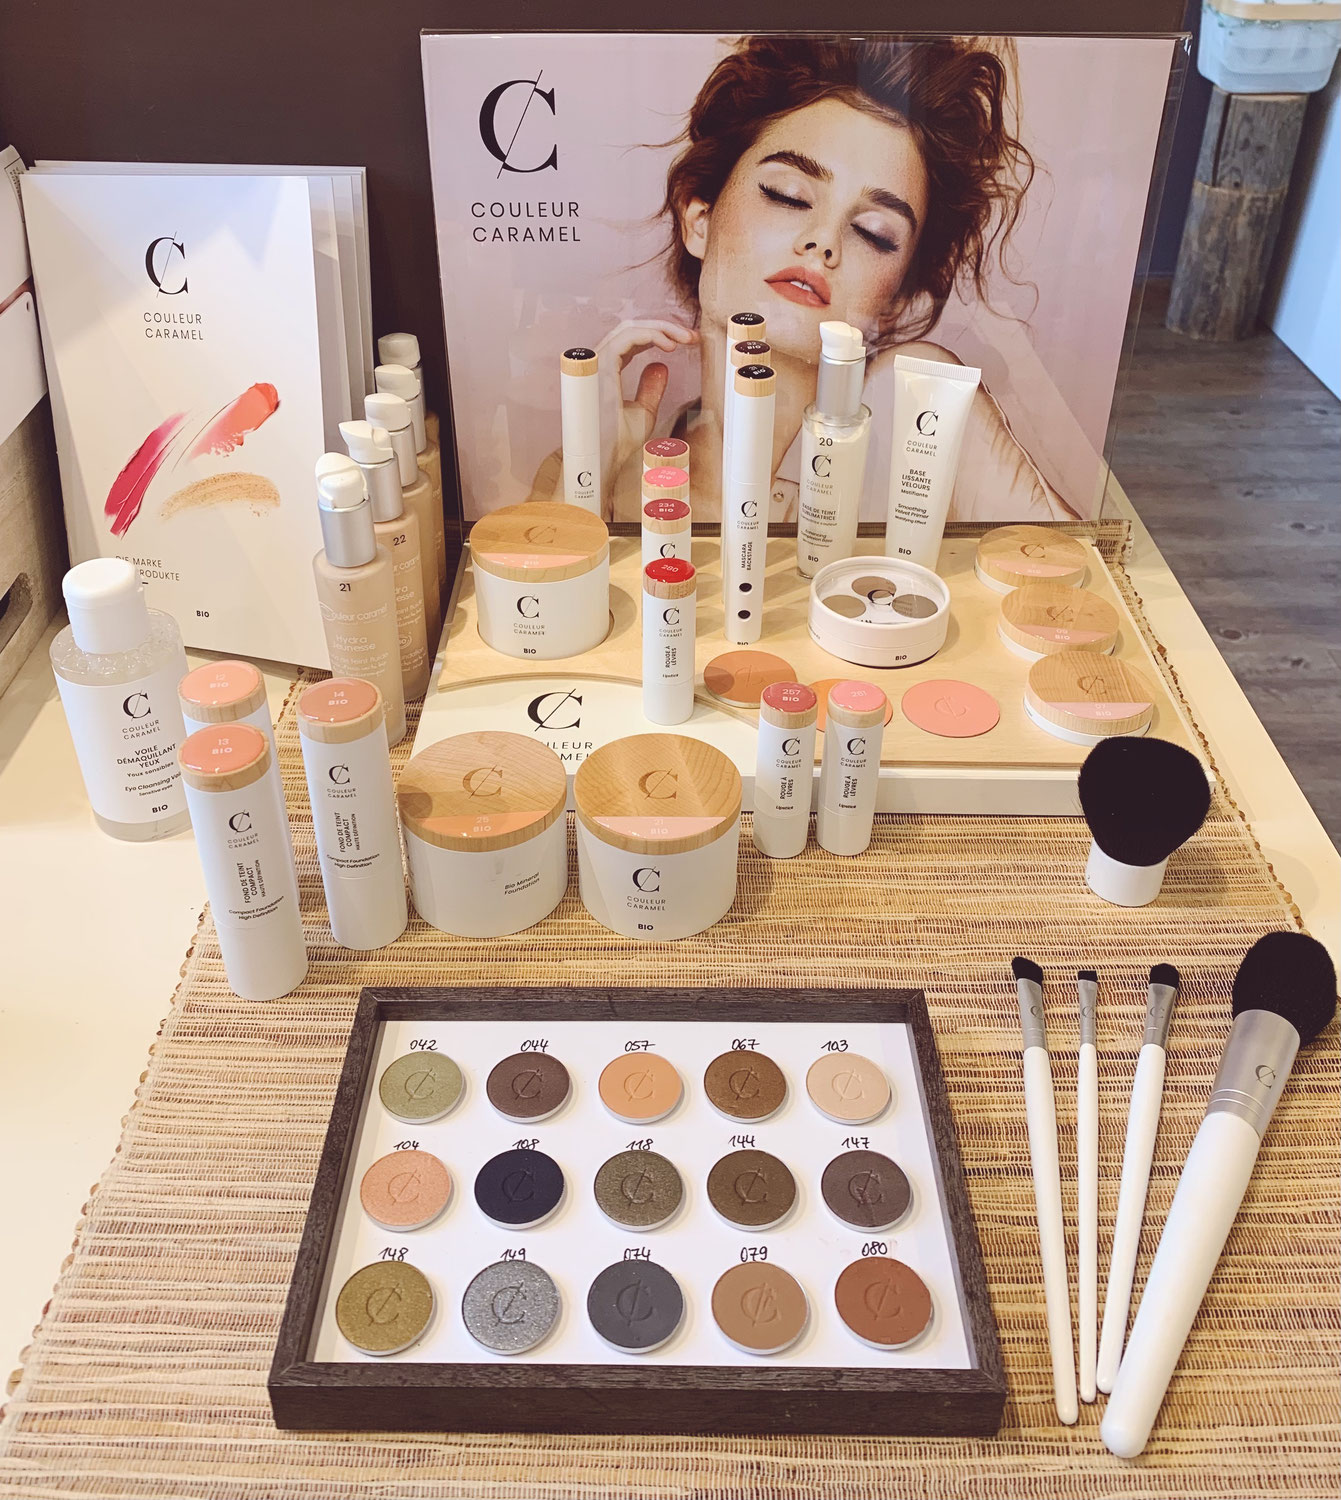 Couleur Caramel Make-up in neuer Verpackung